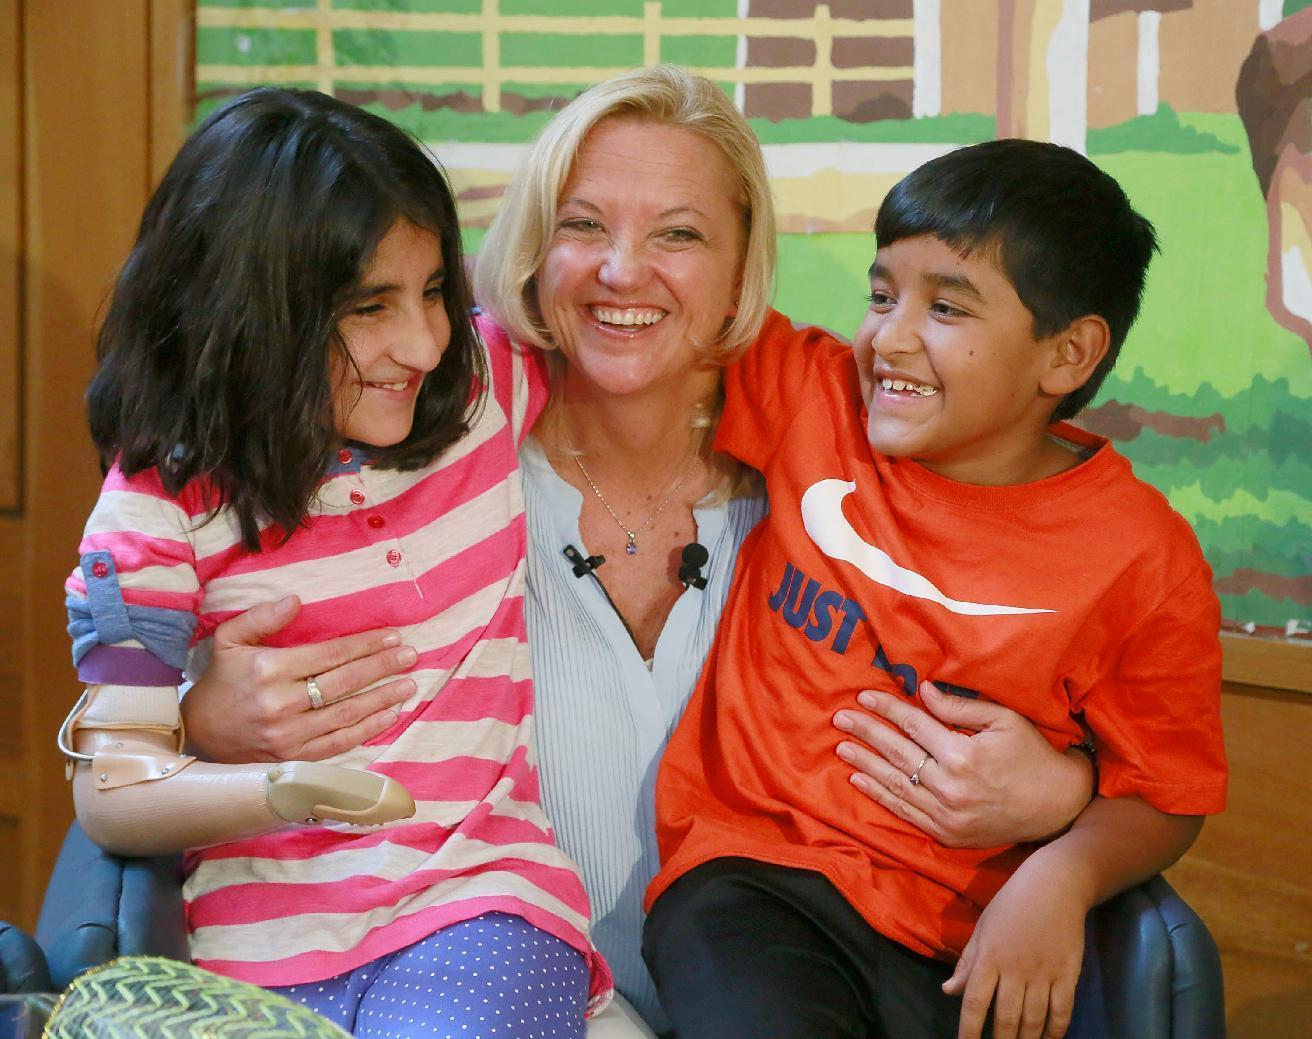 Nurse reunited with injured Afghan children she helped